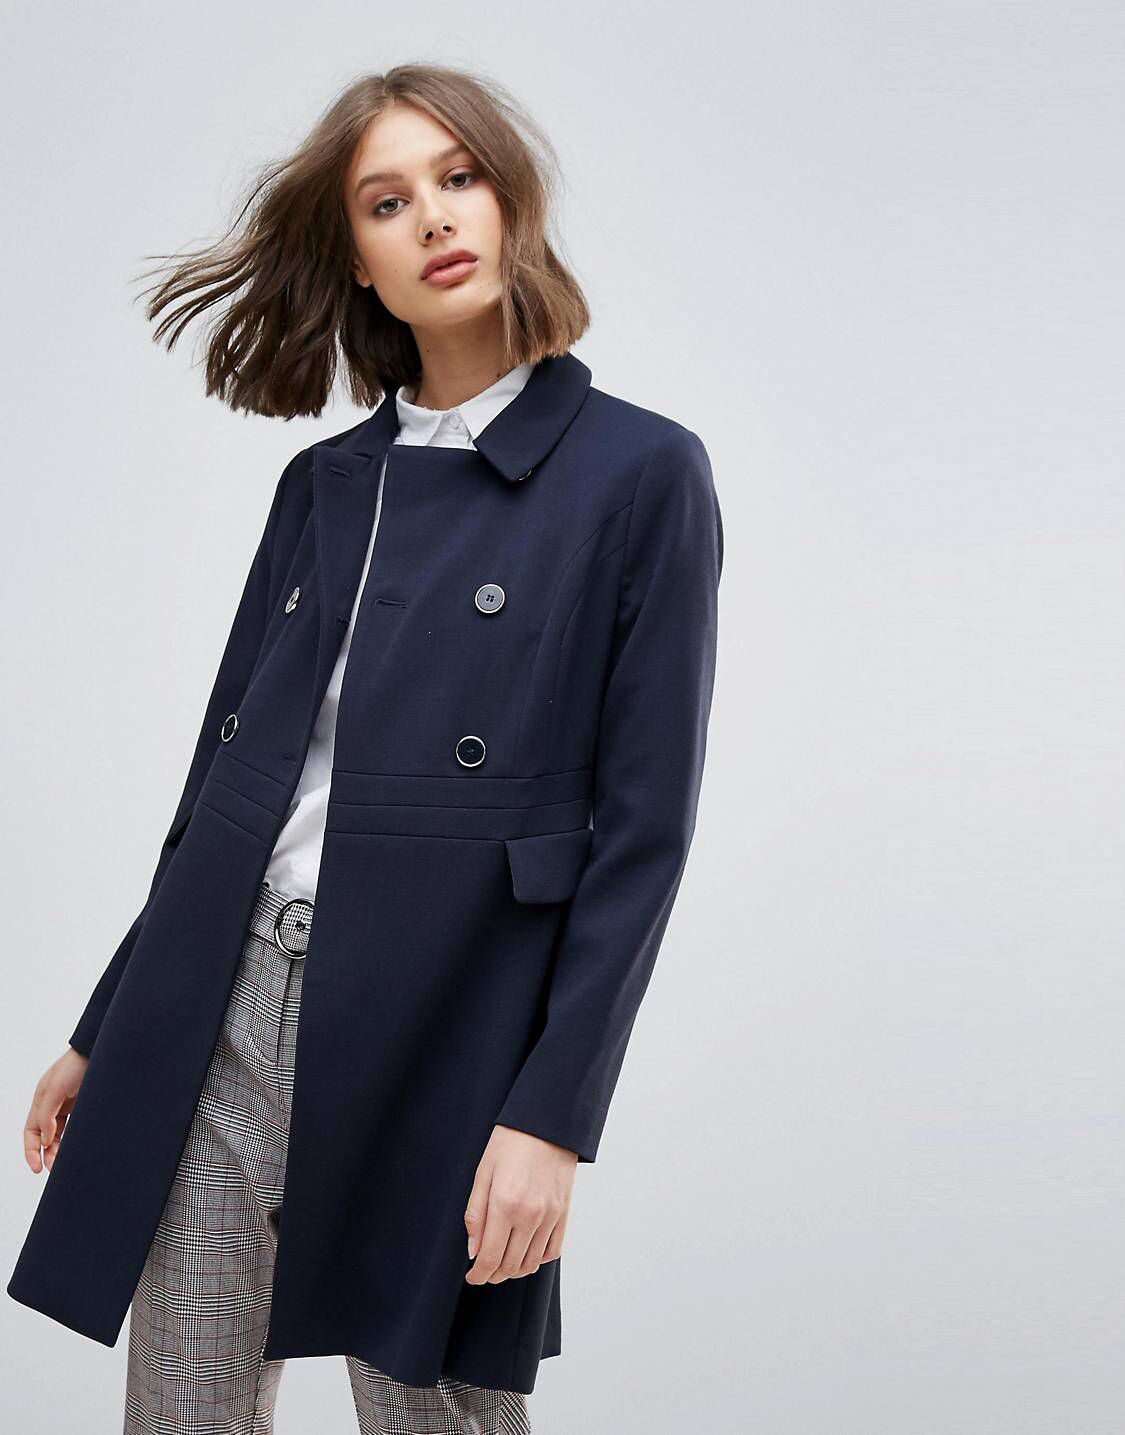 725cd460254e LOVE this from ASOS! | Clothes/Shoes/Accessories | Swing coats, Coat ...